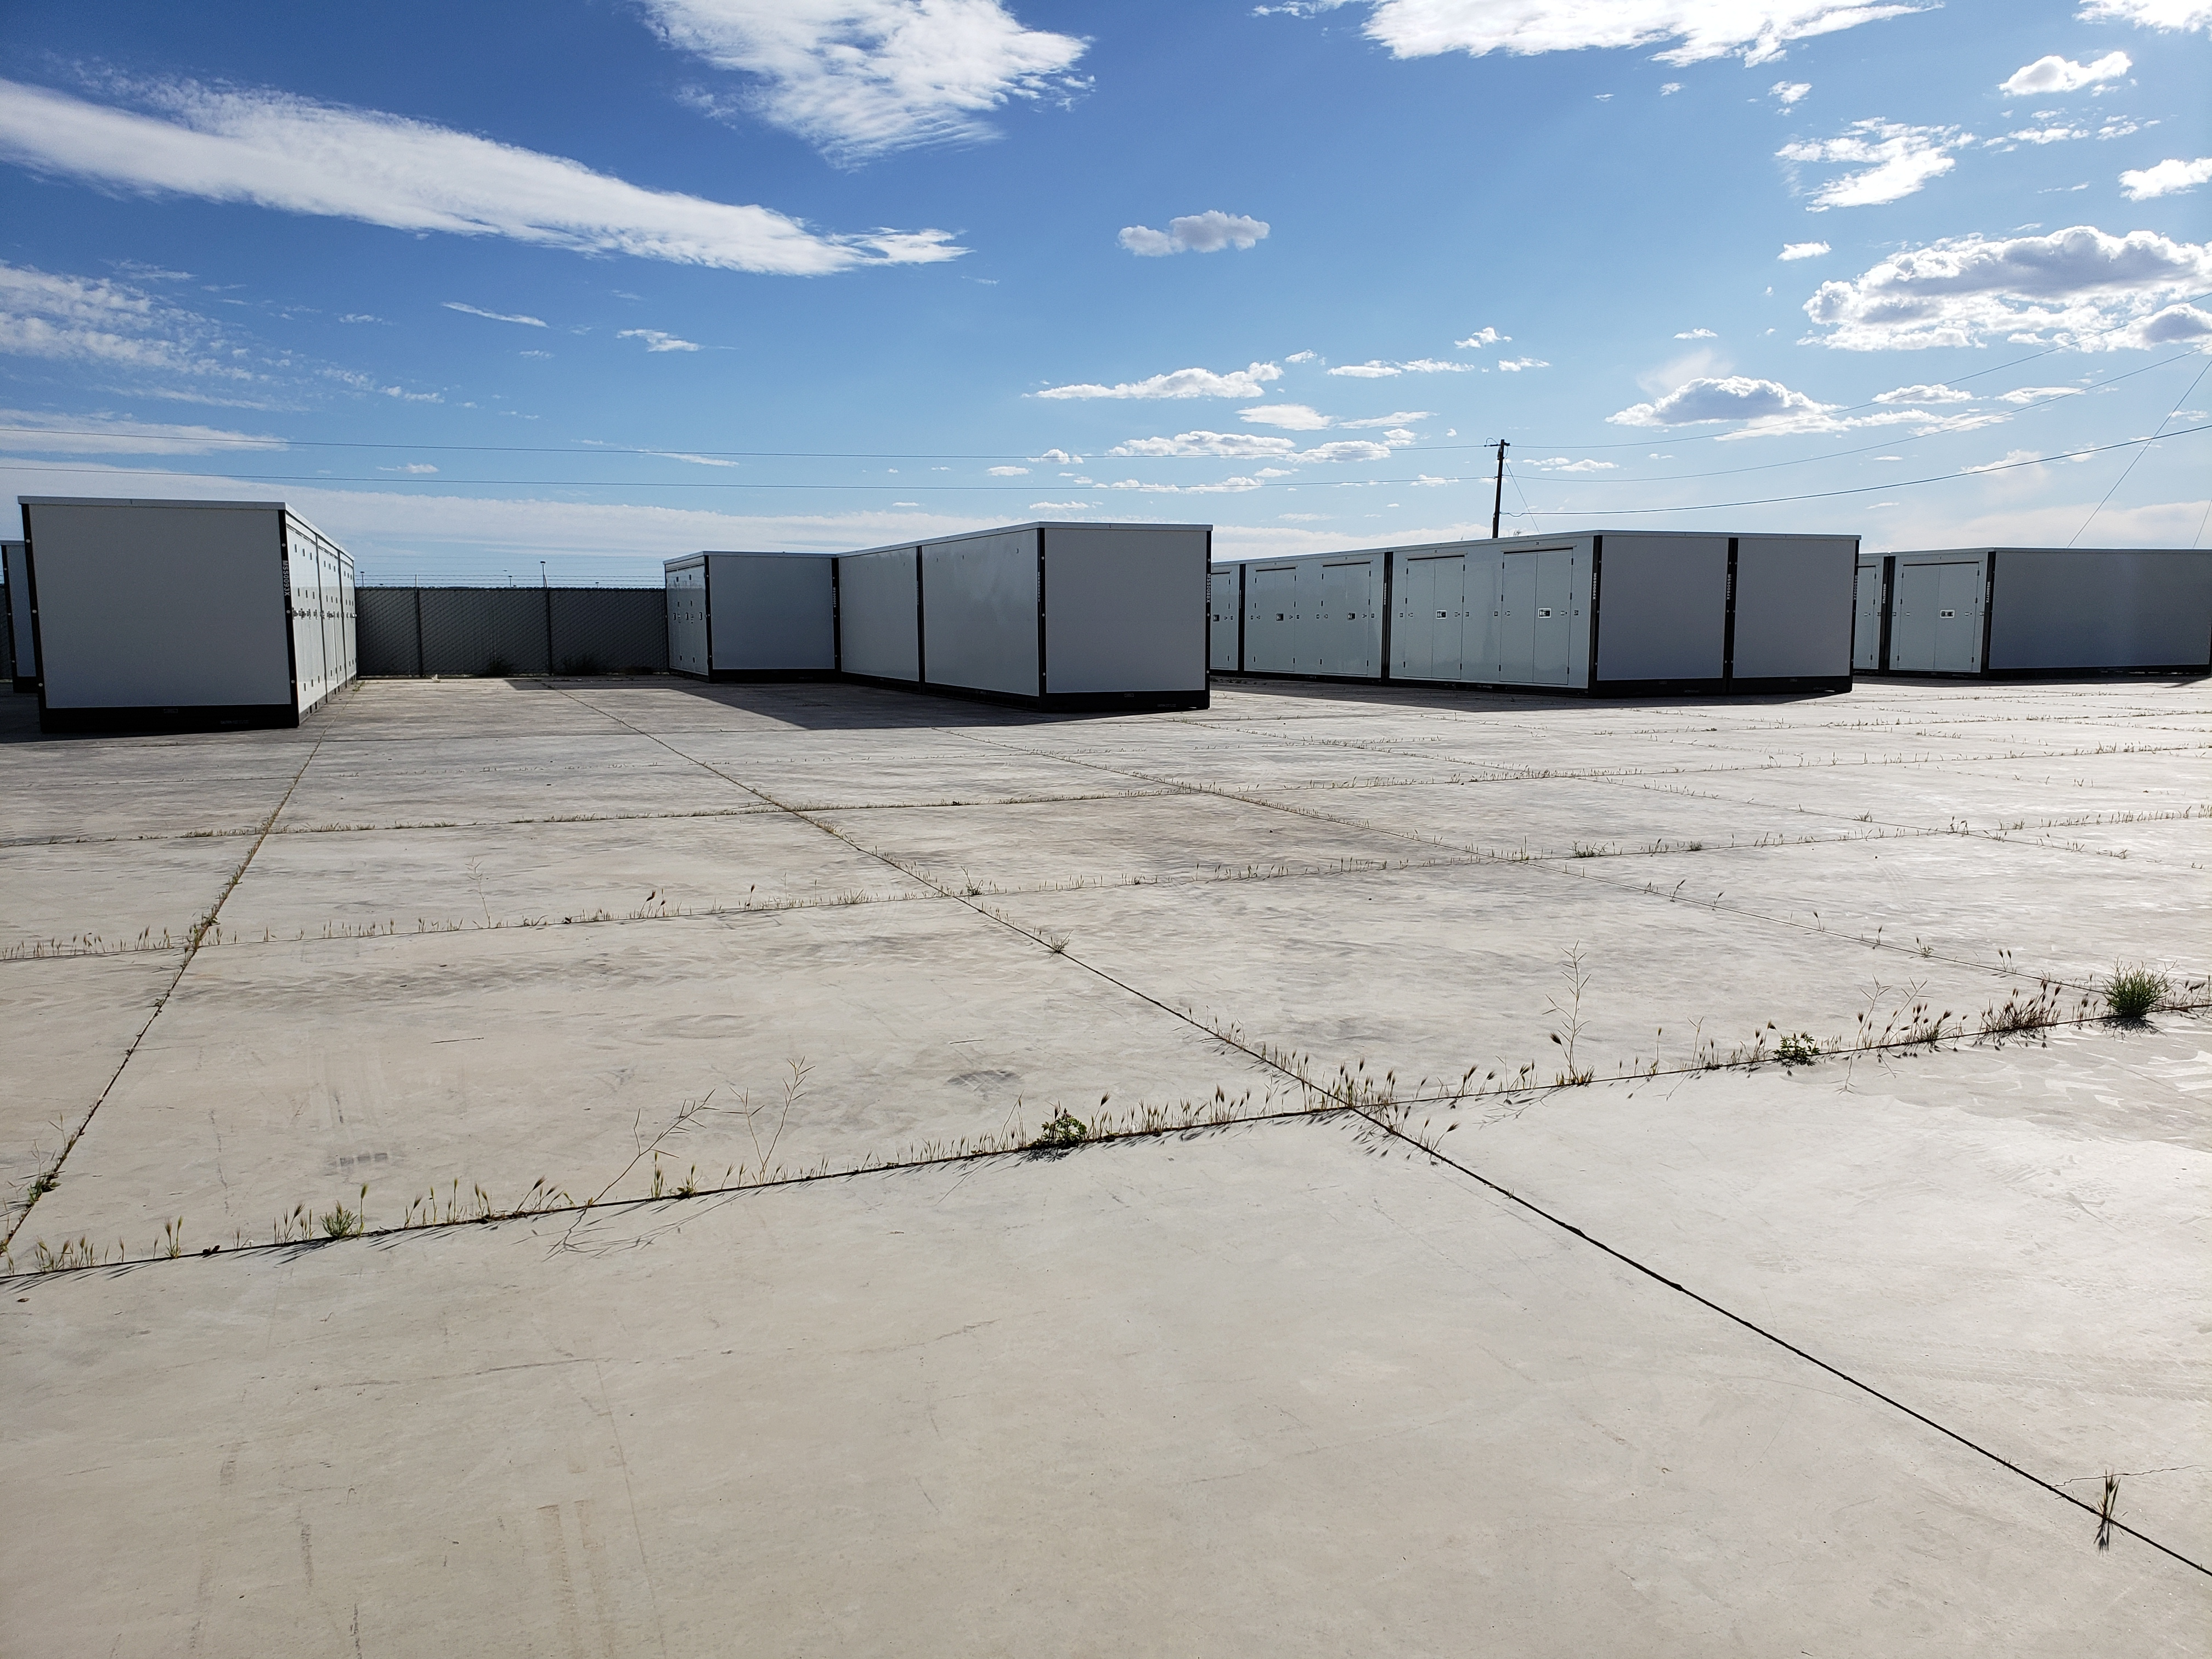 4615 S. Hwy 95 Fort Mohave AZ Storage Pod Enclosed Lockable Units Secure Fencing Lighting Gate